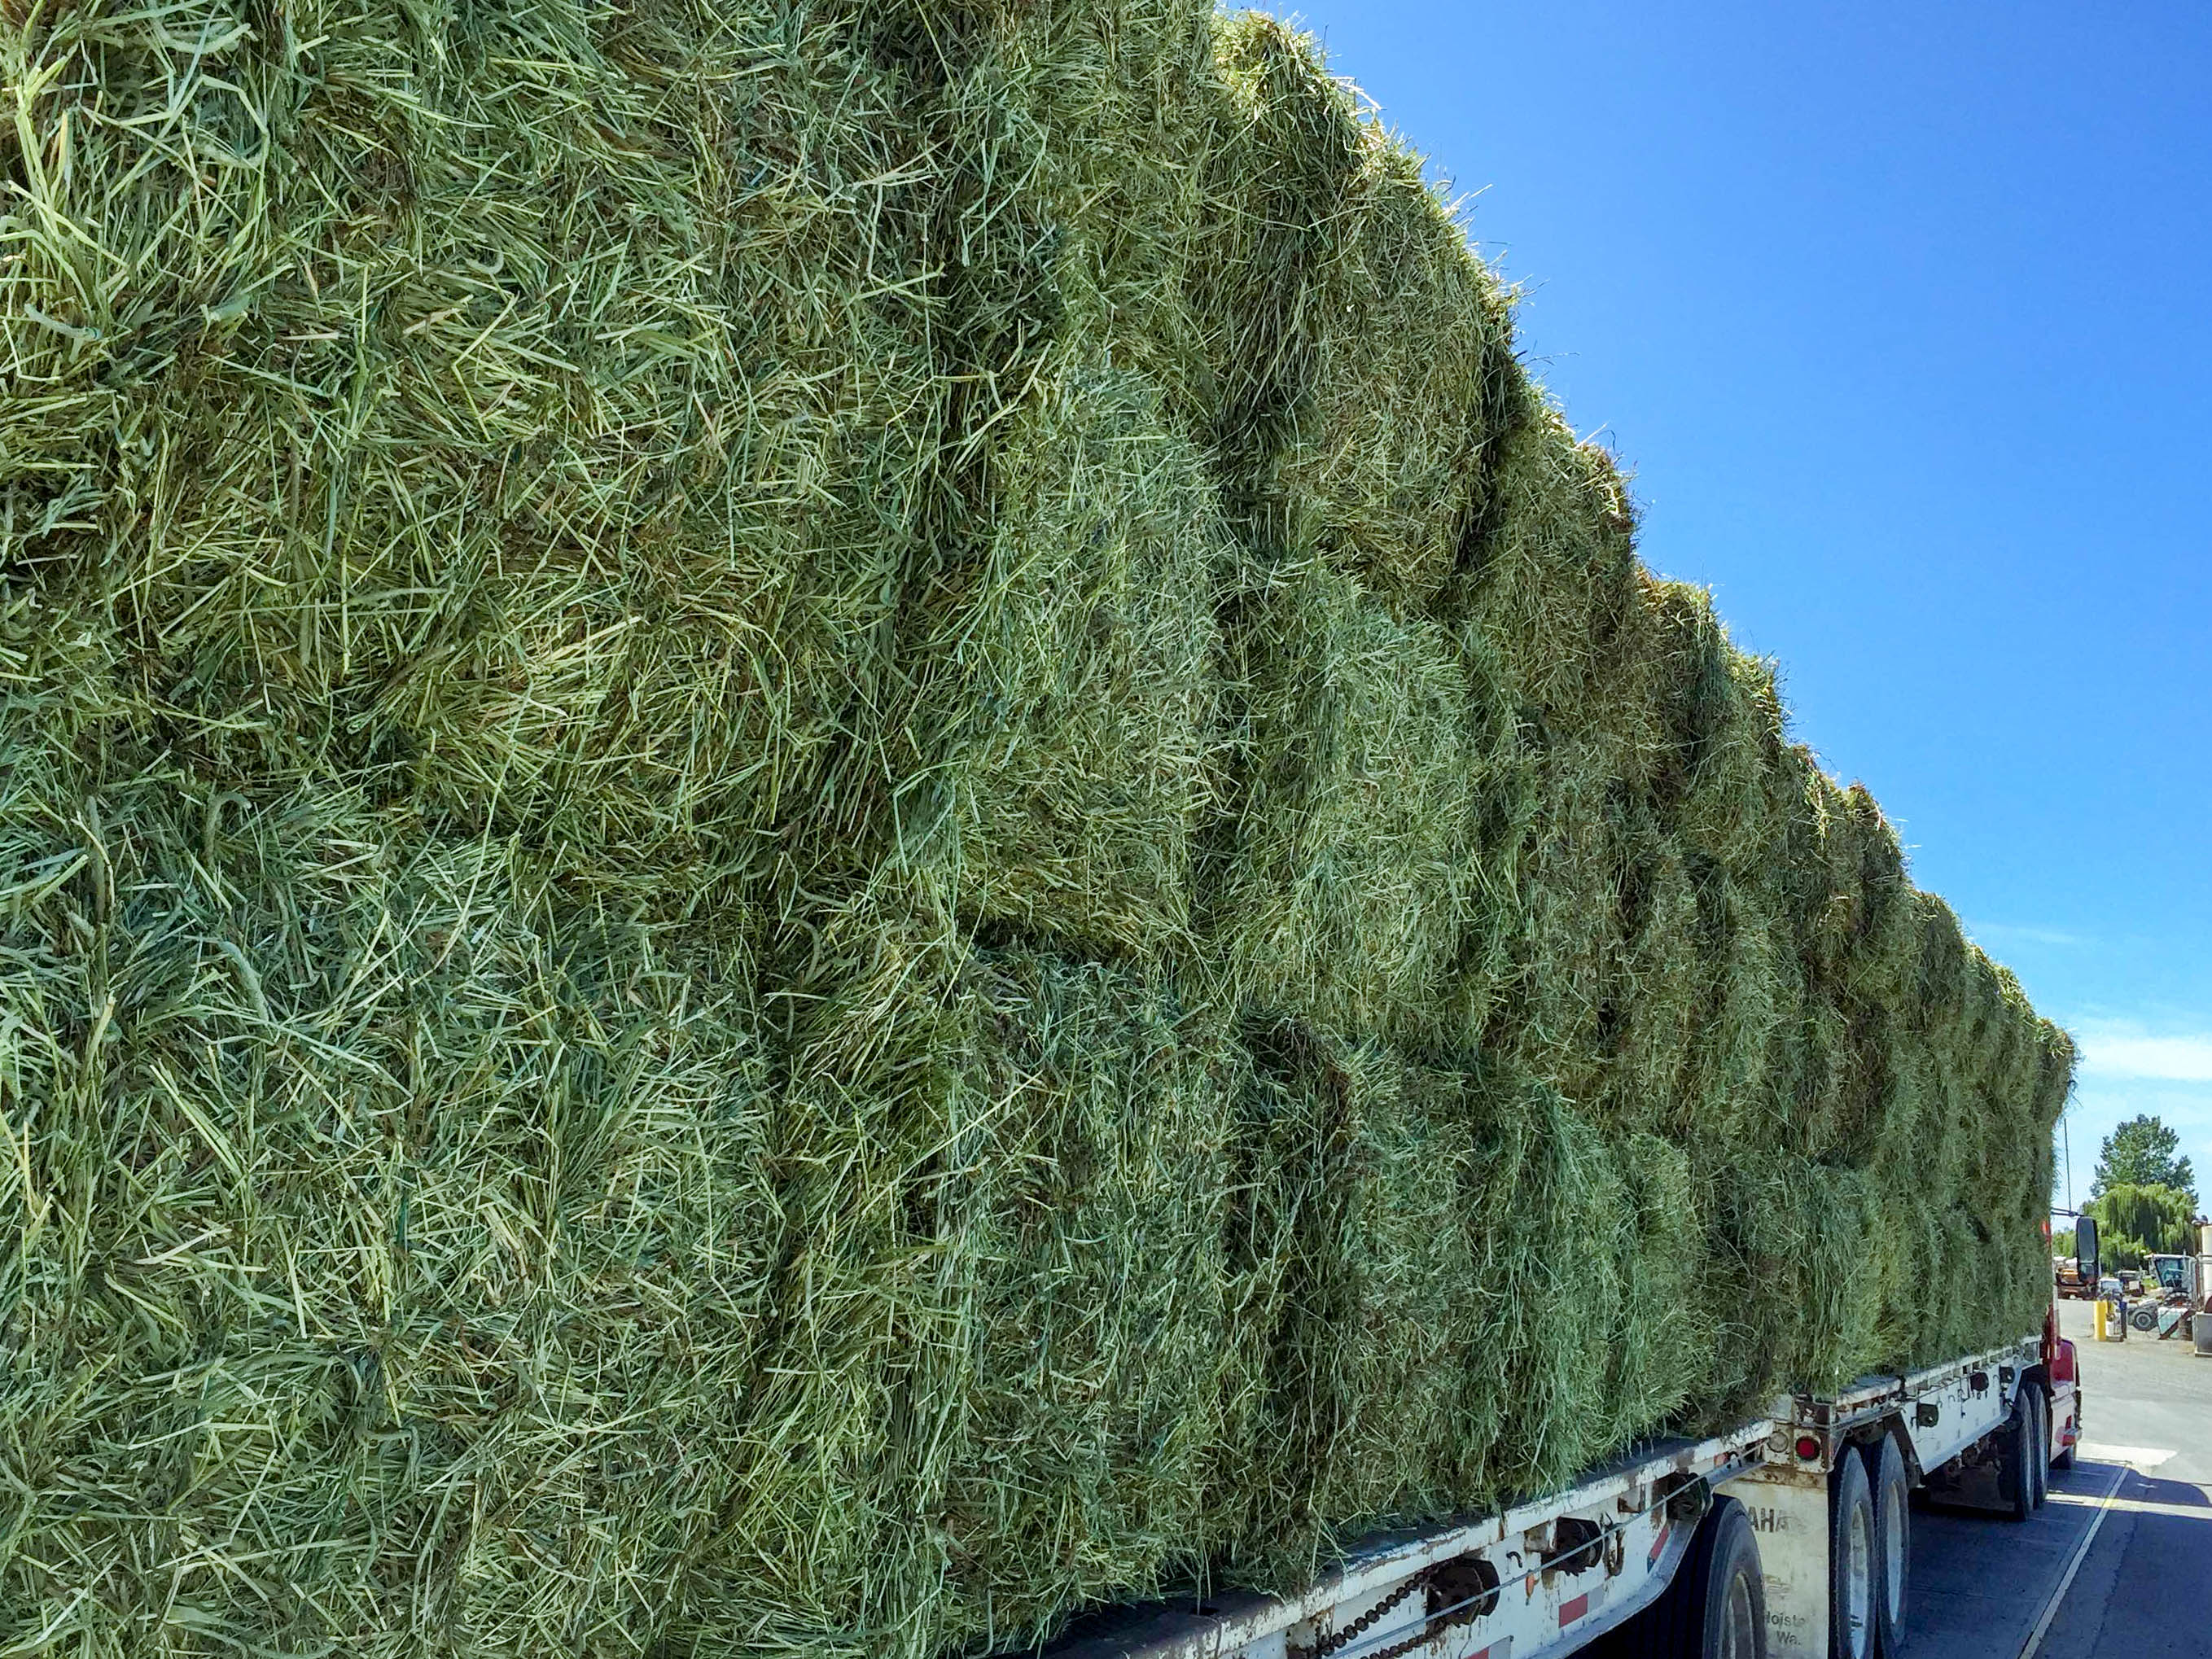 Wholesale Price Alfalfa Hay Dehydrated Alfalfa cubes ready for Export